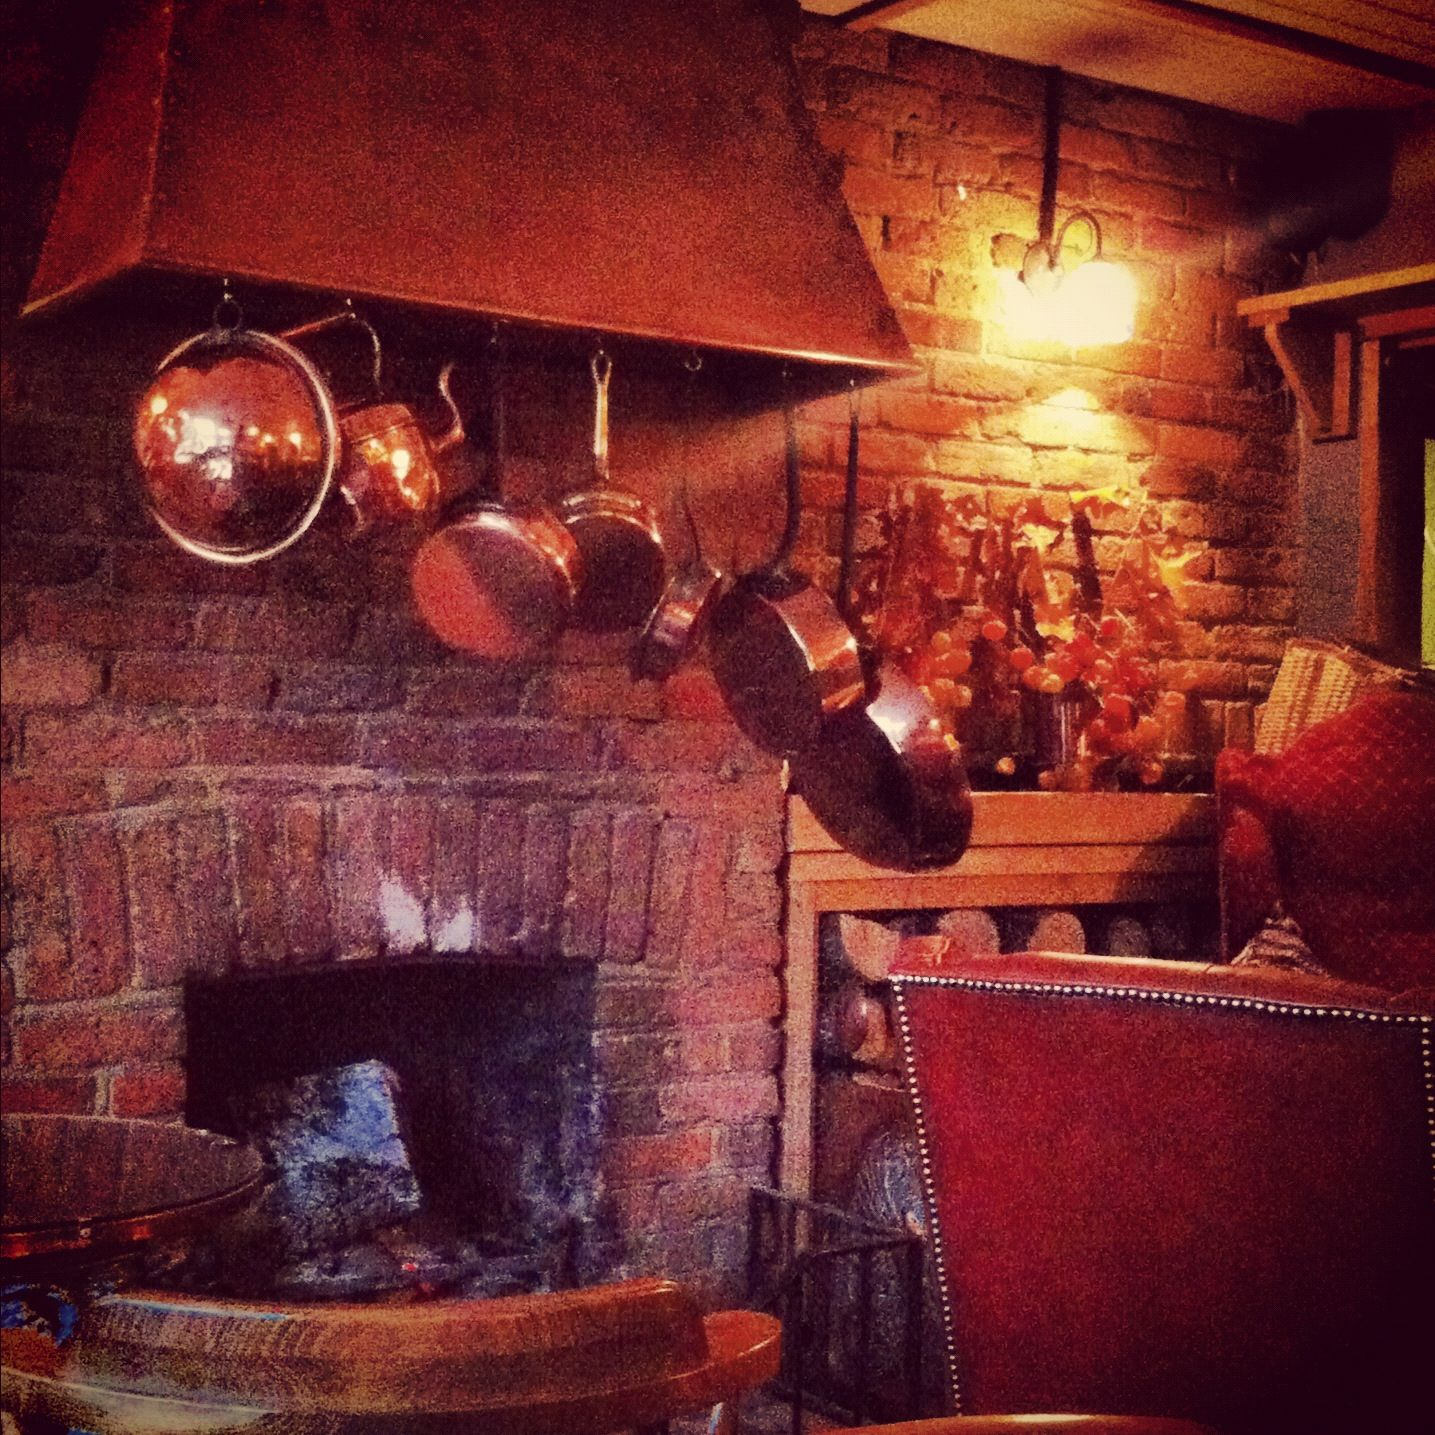 Country Pubbing In Woodmancoate, West Sussex #Pub #Fireplace #Country